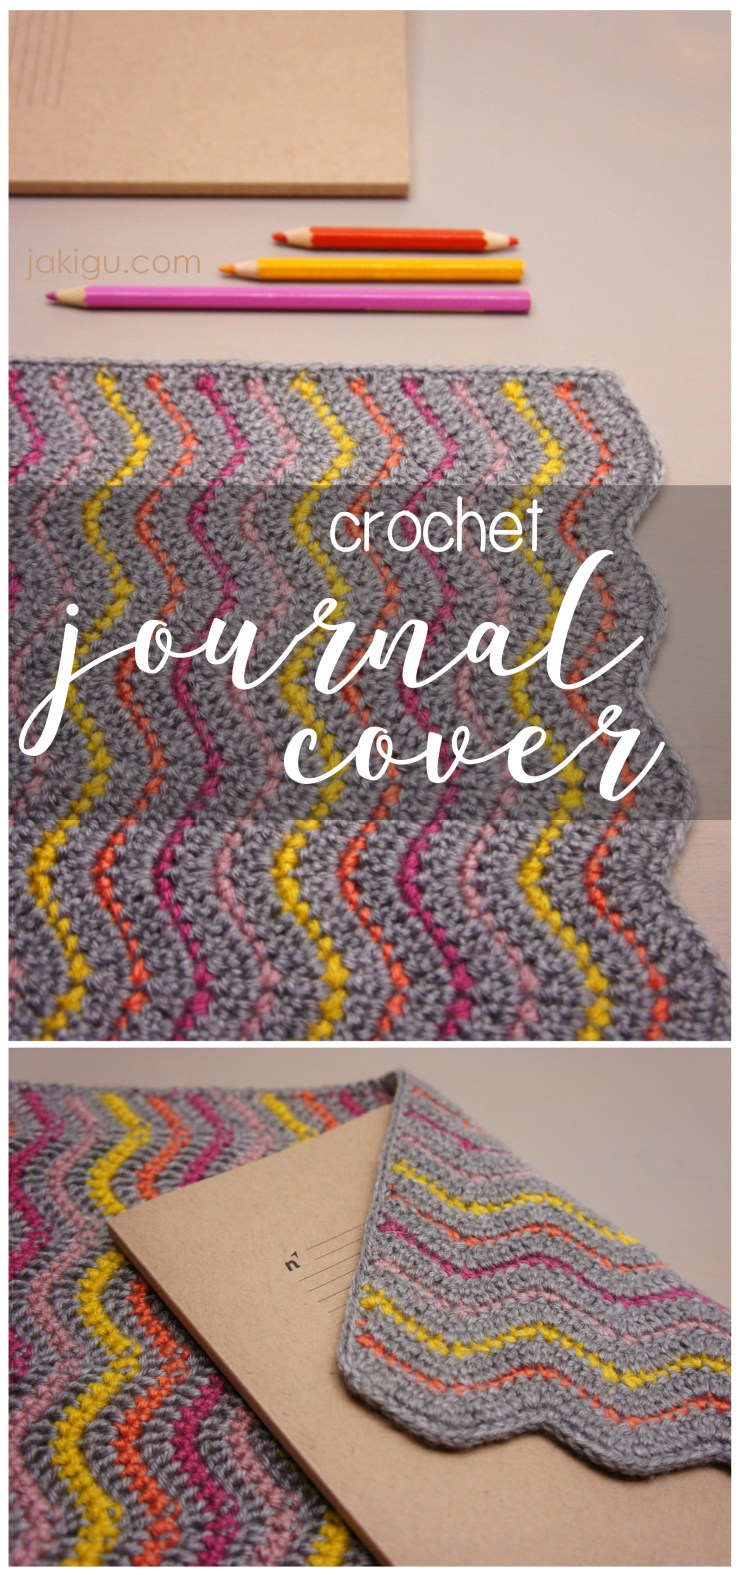 crochet journal cover